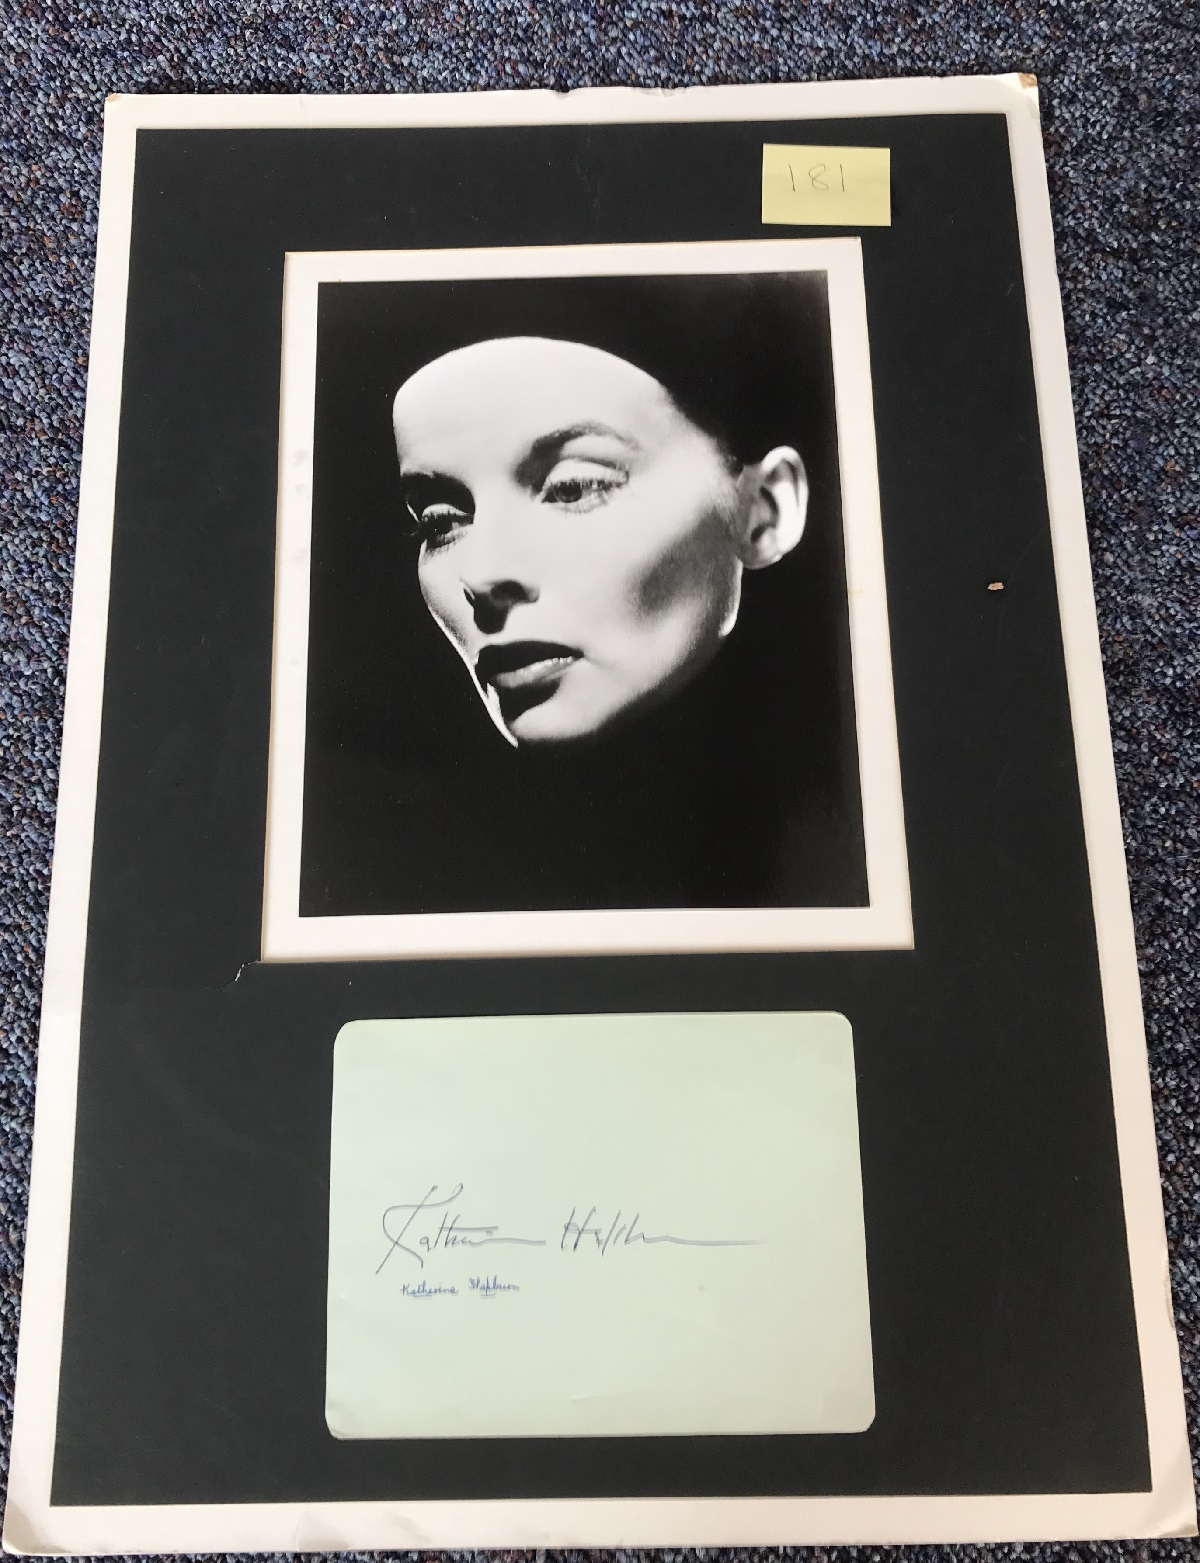 Katherine Hepburn signed autograph album page, mounted with a 10x8 black and white photo of